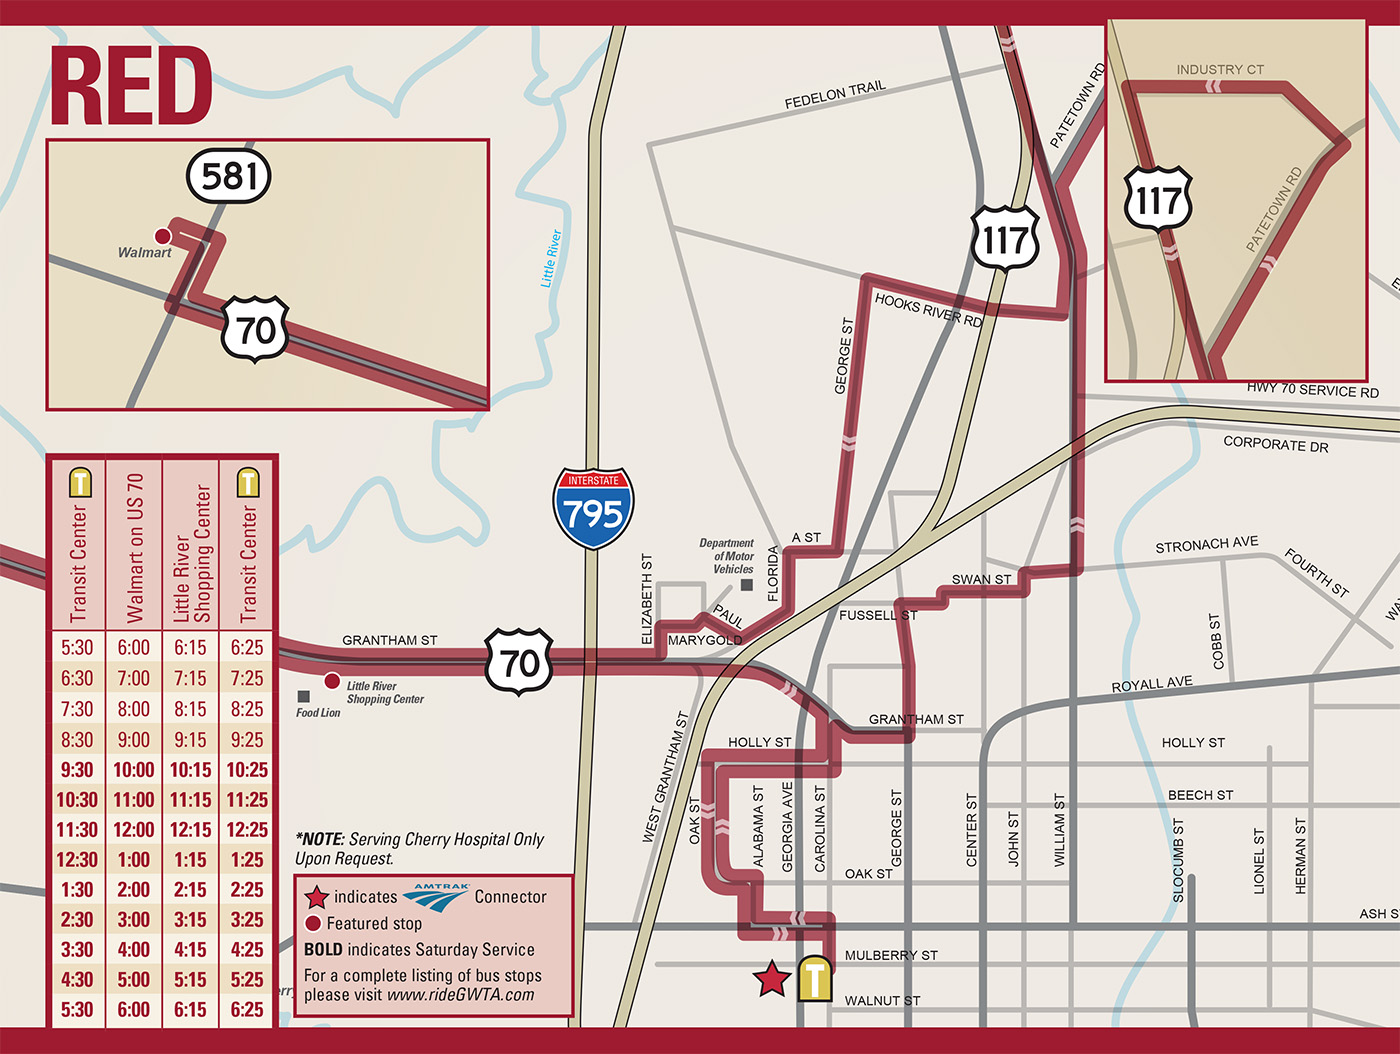 GWTA Red Route Schedule map